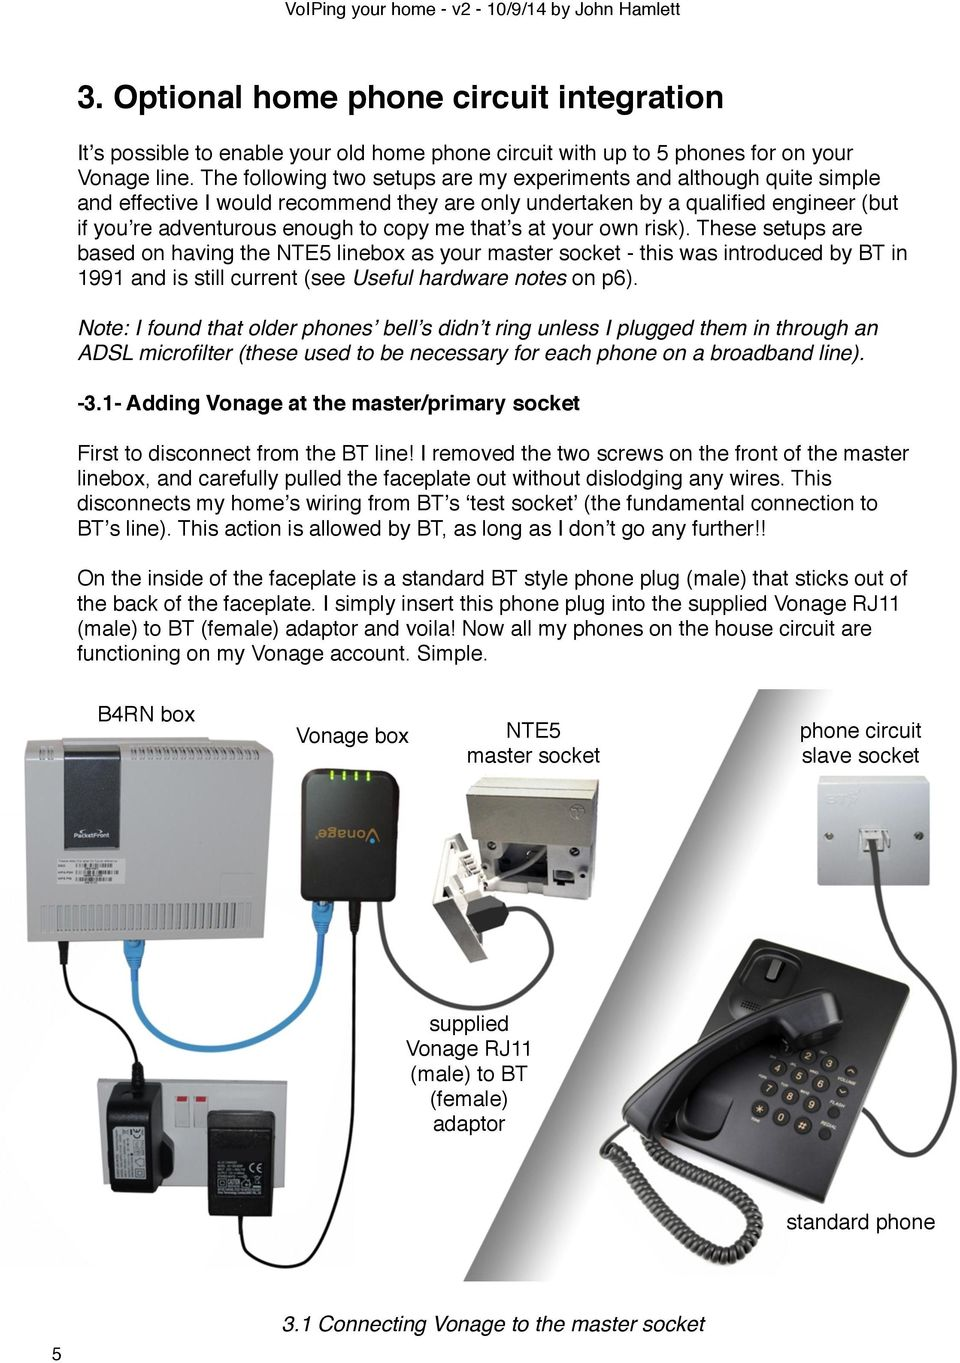 An Unofficial Guide To Setting Up Vonage Voip On B4rn And Notes Bt Line Master Socket Wiring Phone Connecting The Thats At Your Own Risk These Setups Are Based Having Nte5 Linebox